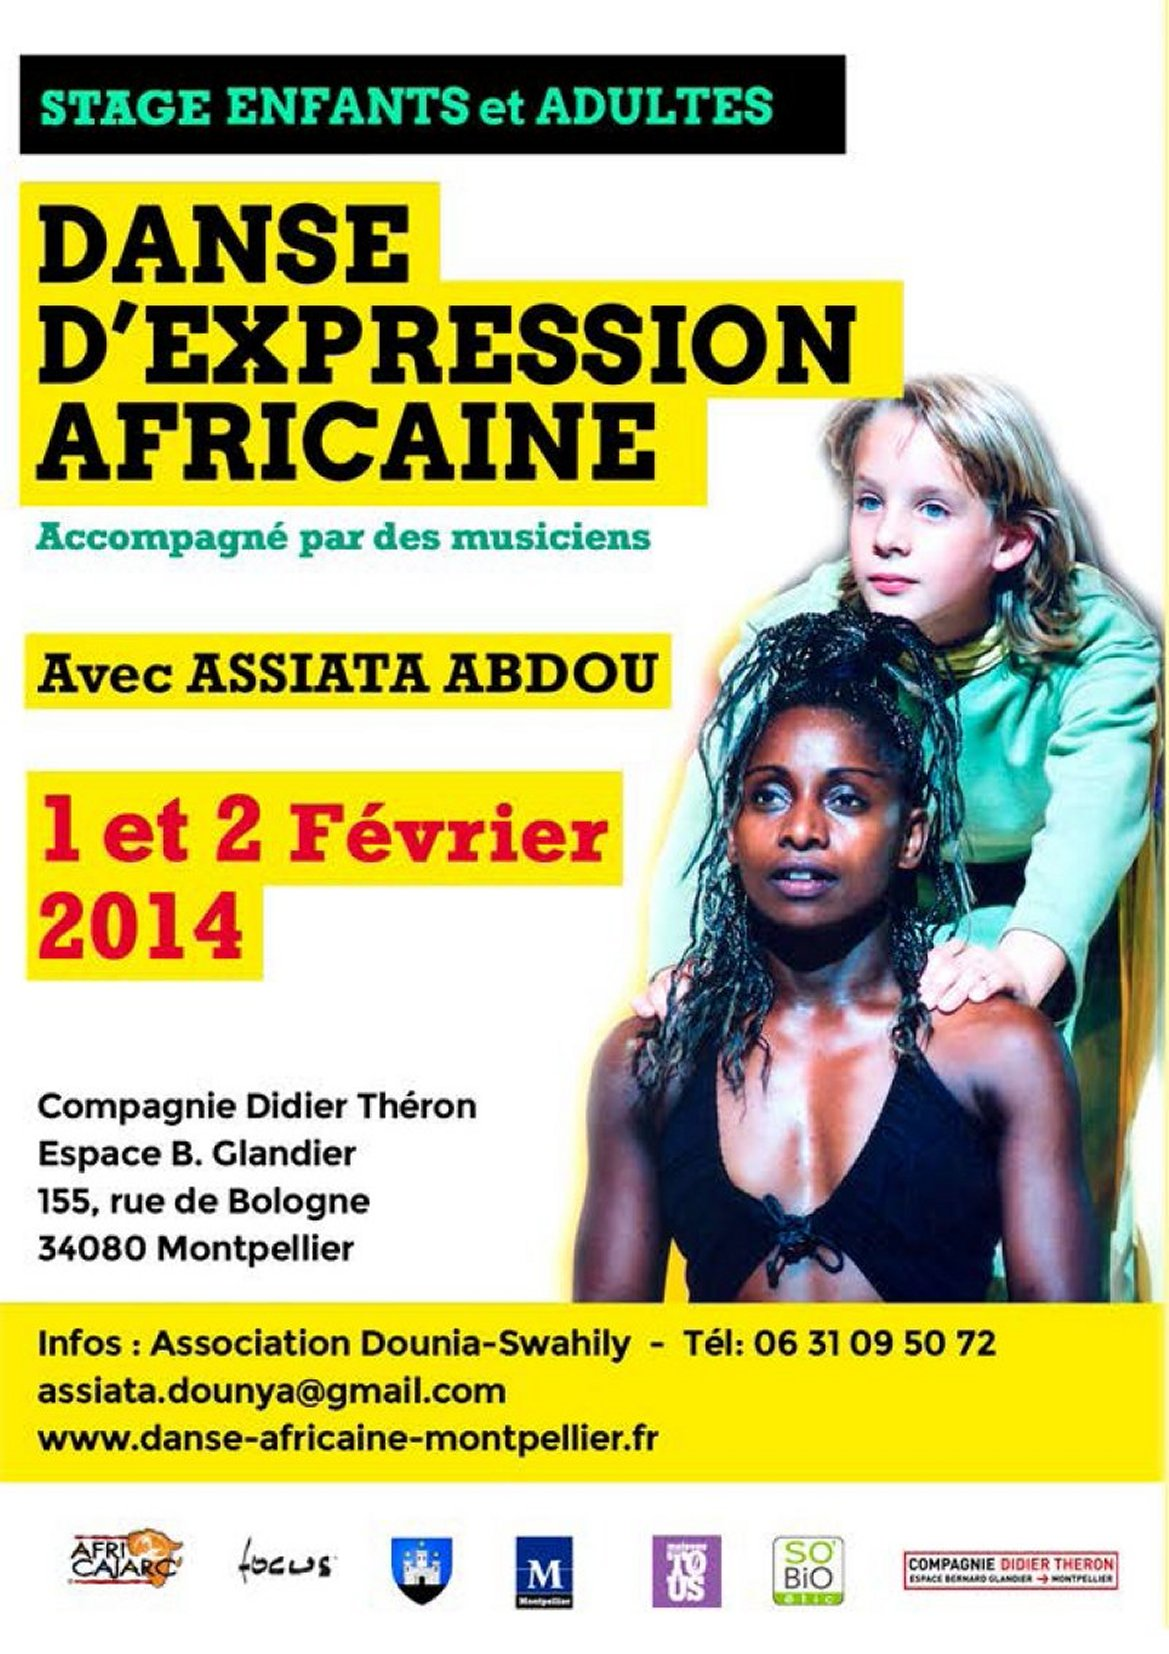 stages danse expression africaine jan14 1